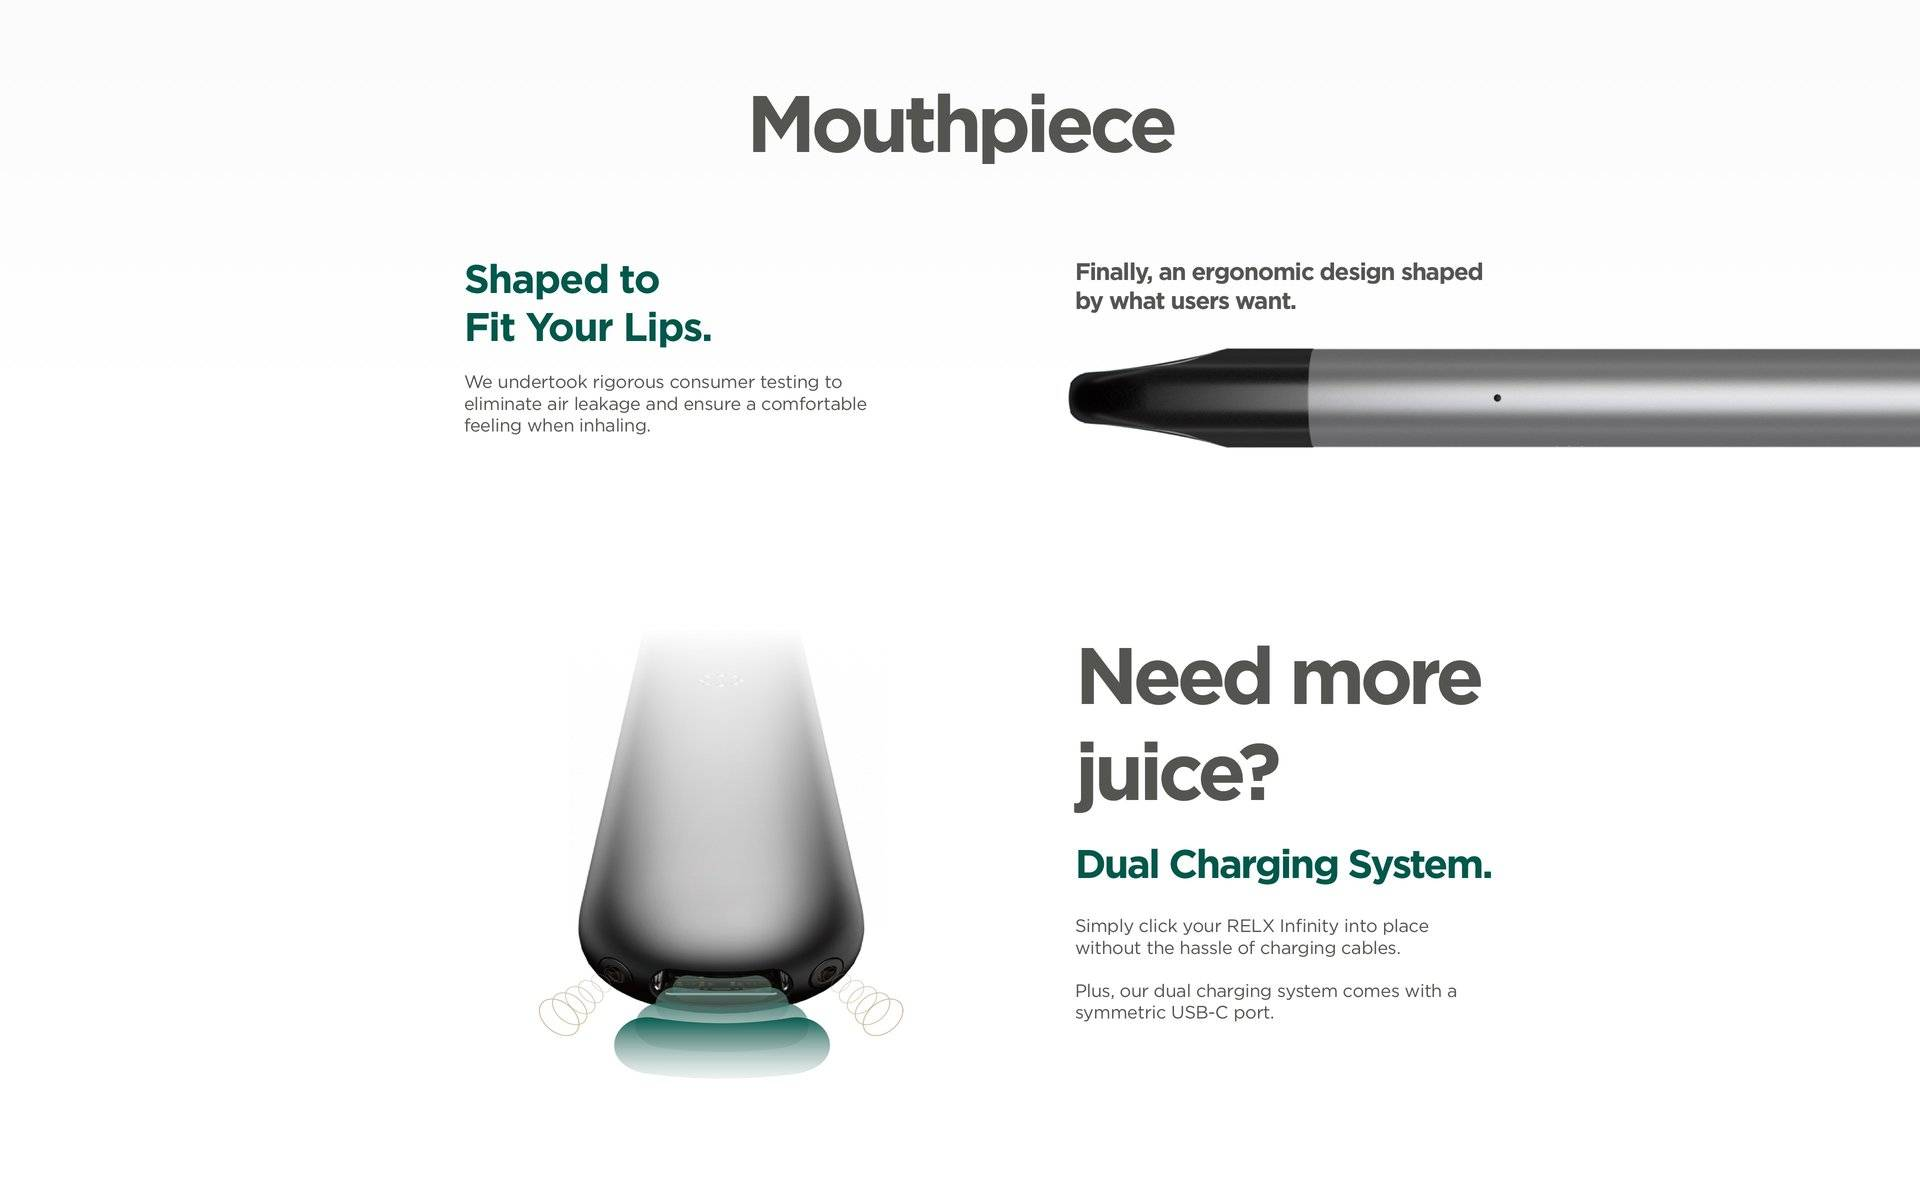 RELX devices are shaped to fit your lips.